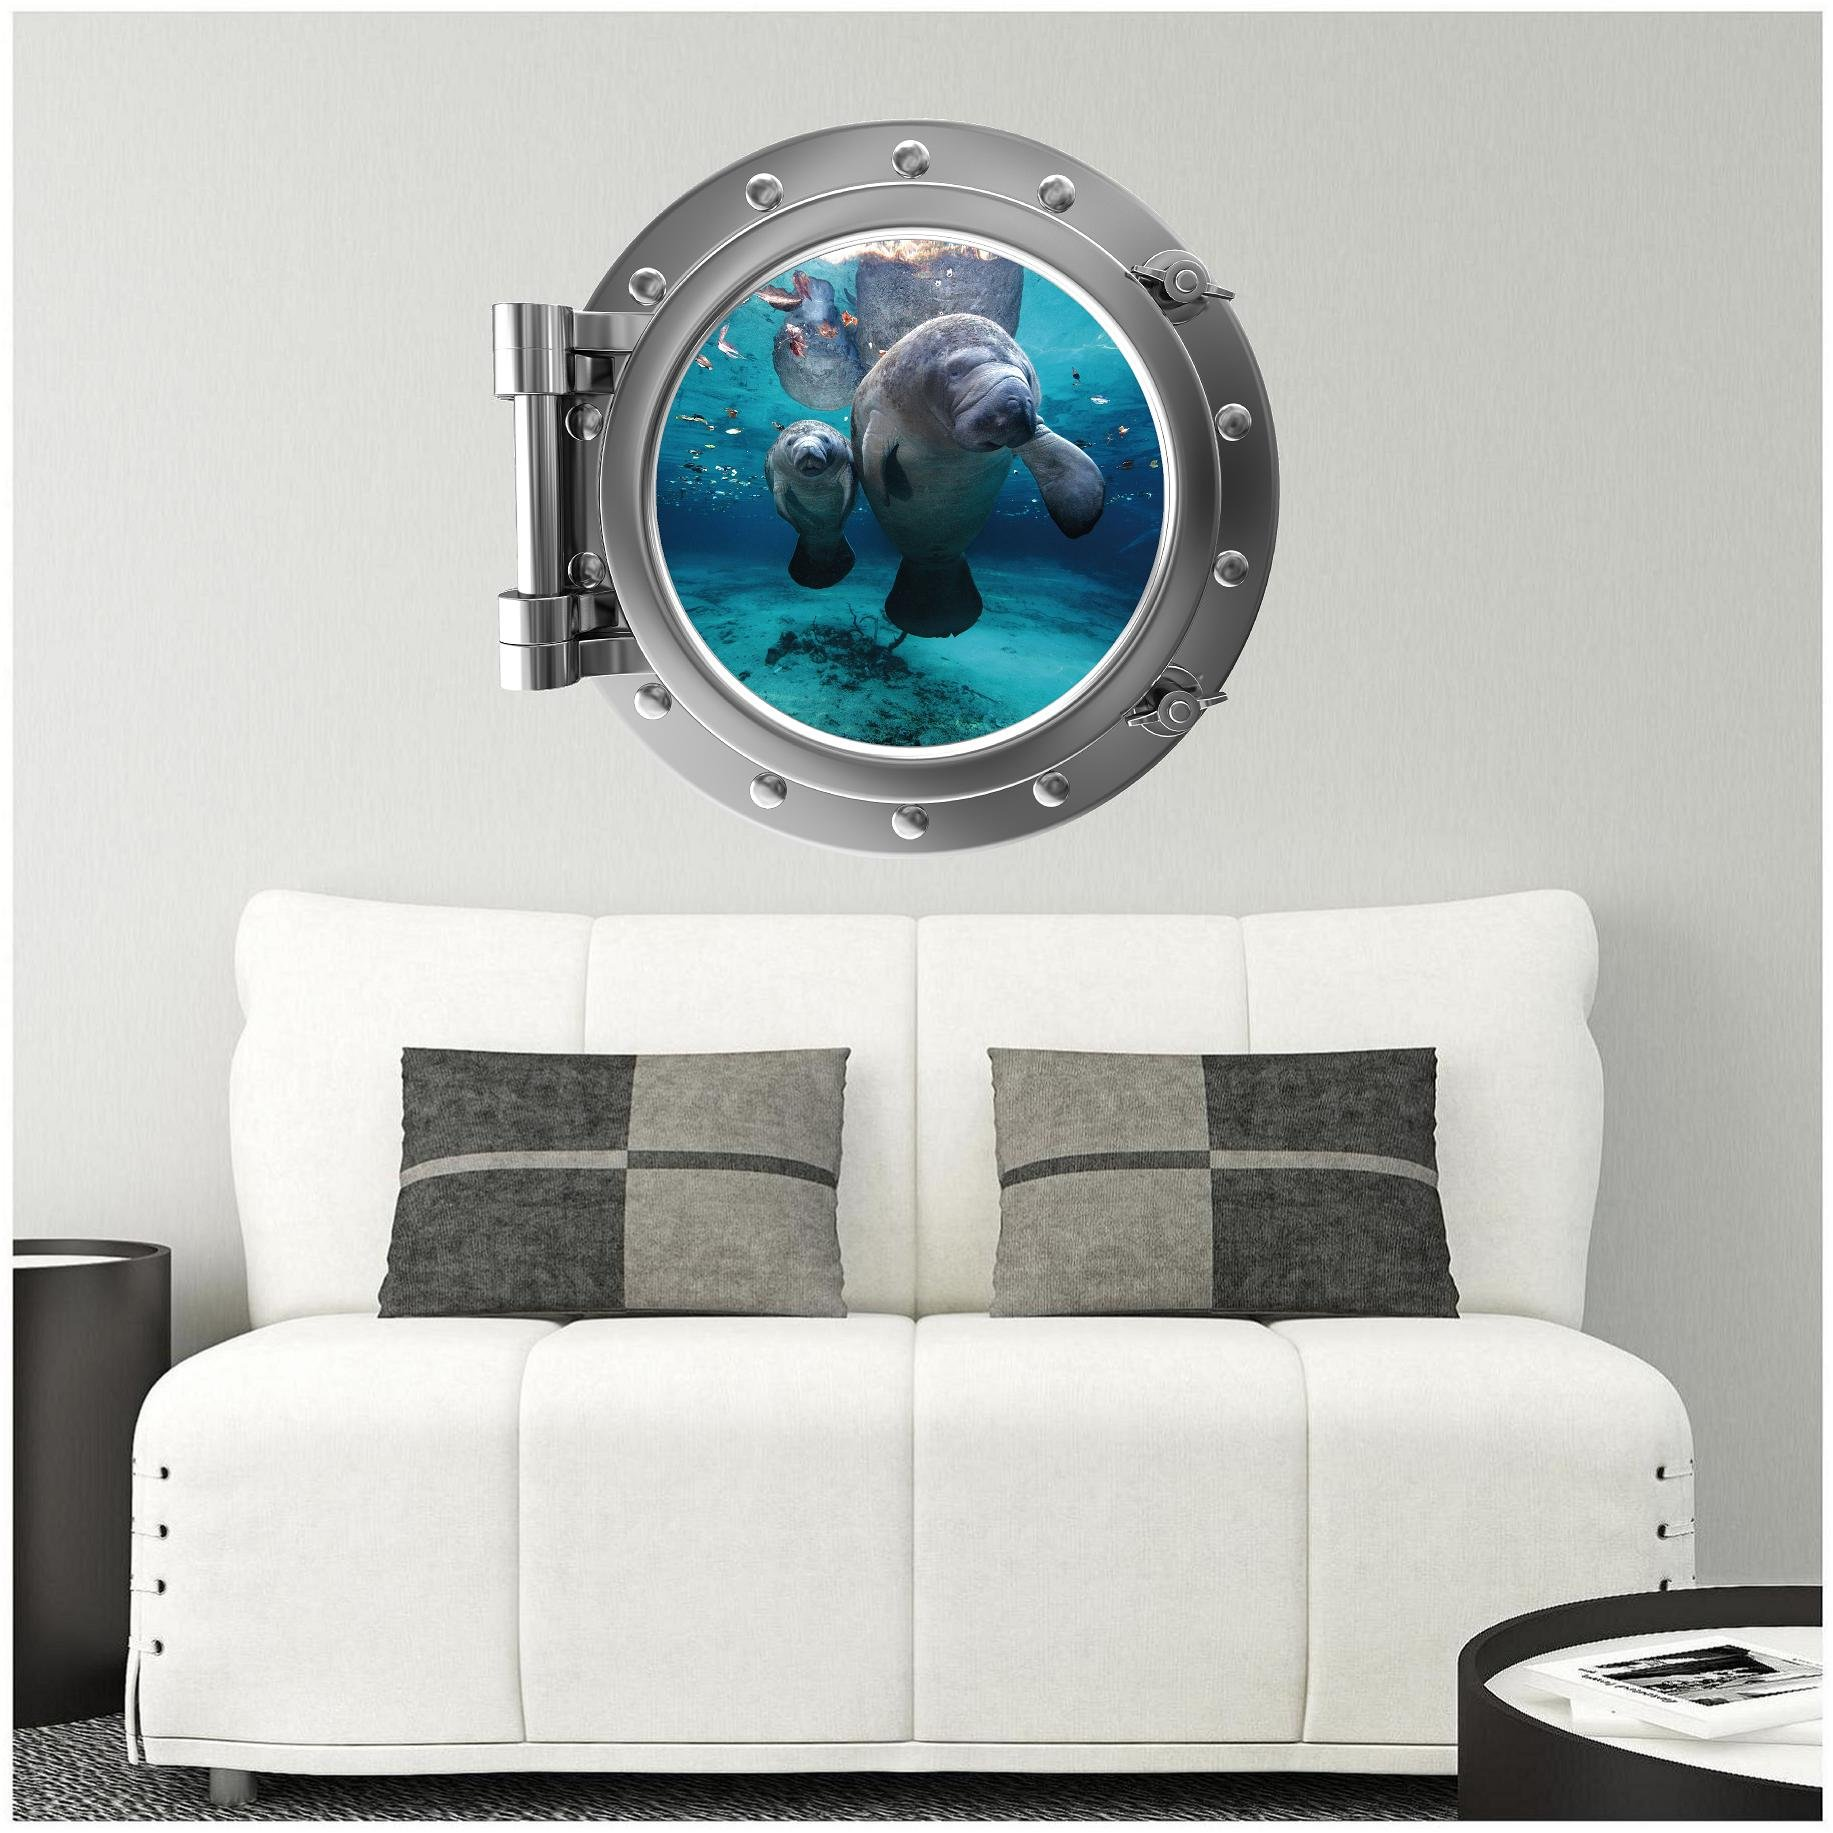 24'' Port Scape Manatee with Cub 1 SILVER Porthole Window Wall Decal Sticker Mural Home Kids Game Room Art Decor Instant Sea Window